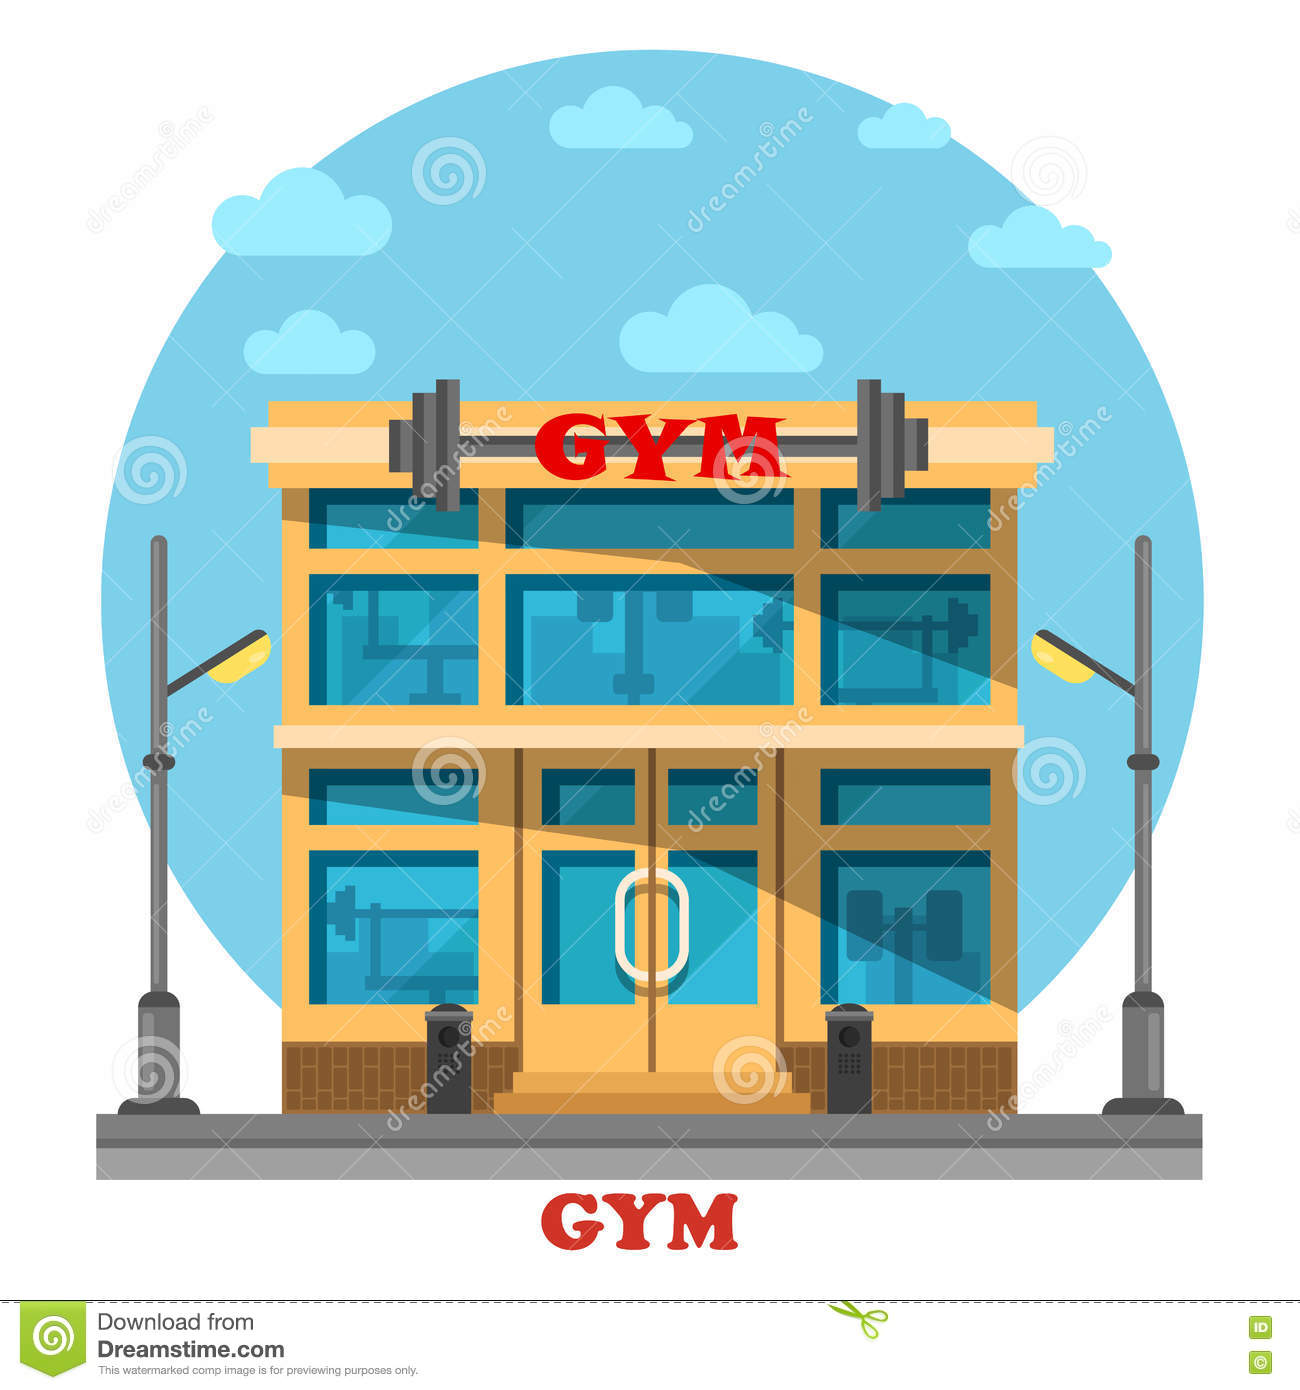 Gym or gymnasium fitness center architecture stock vector